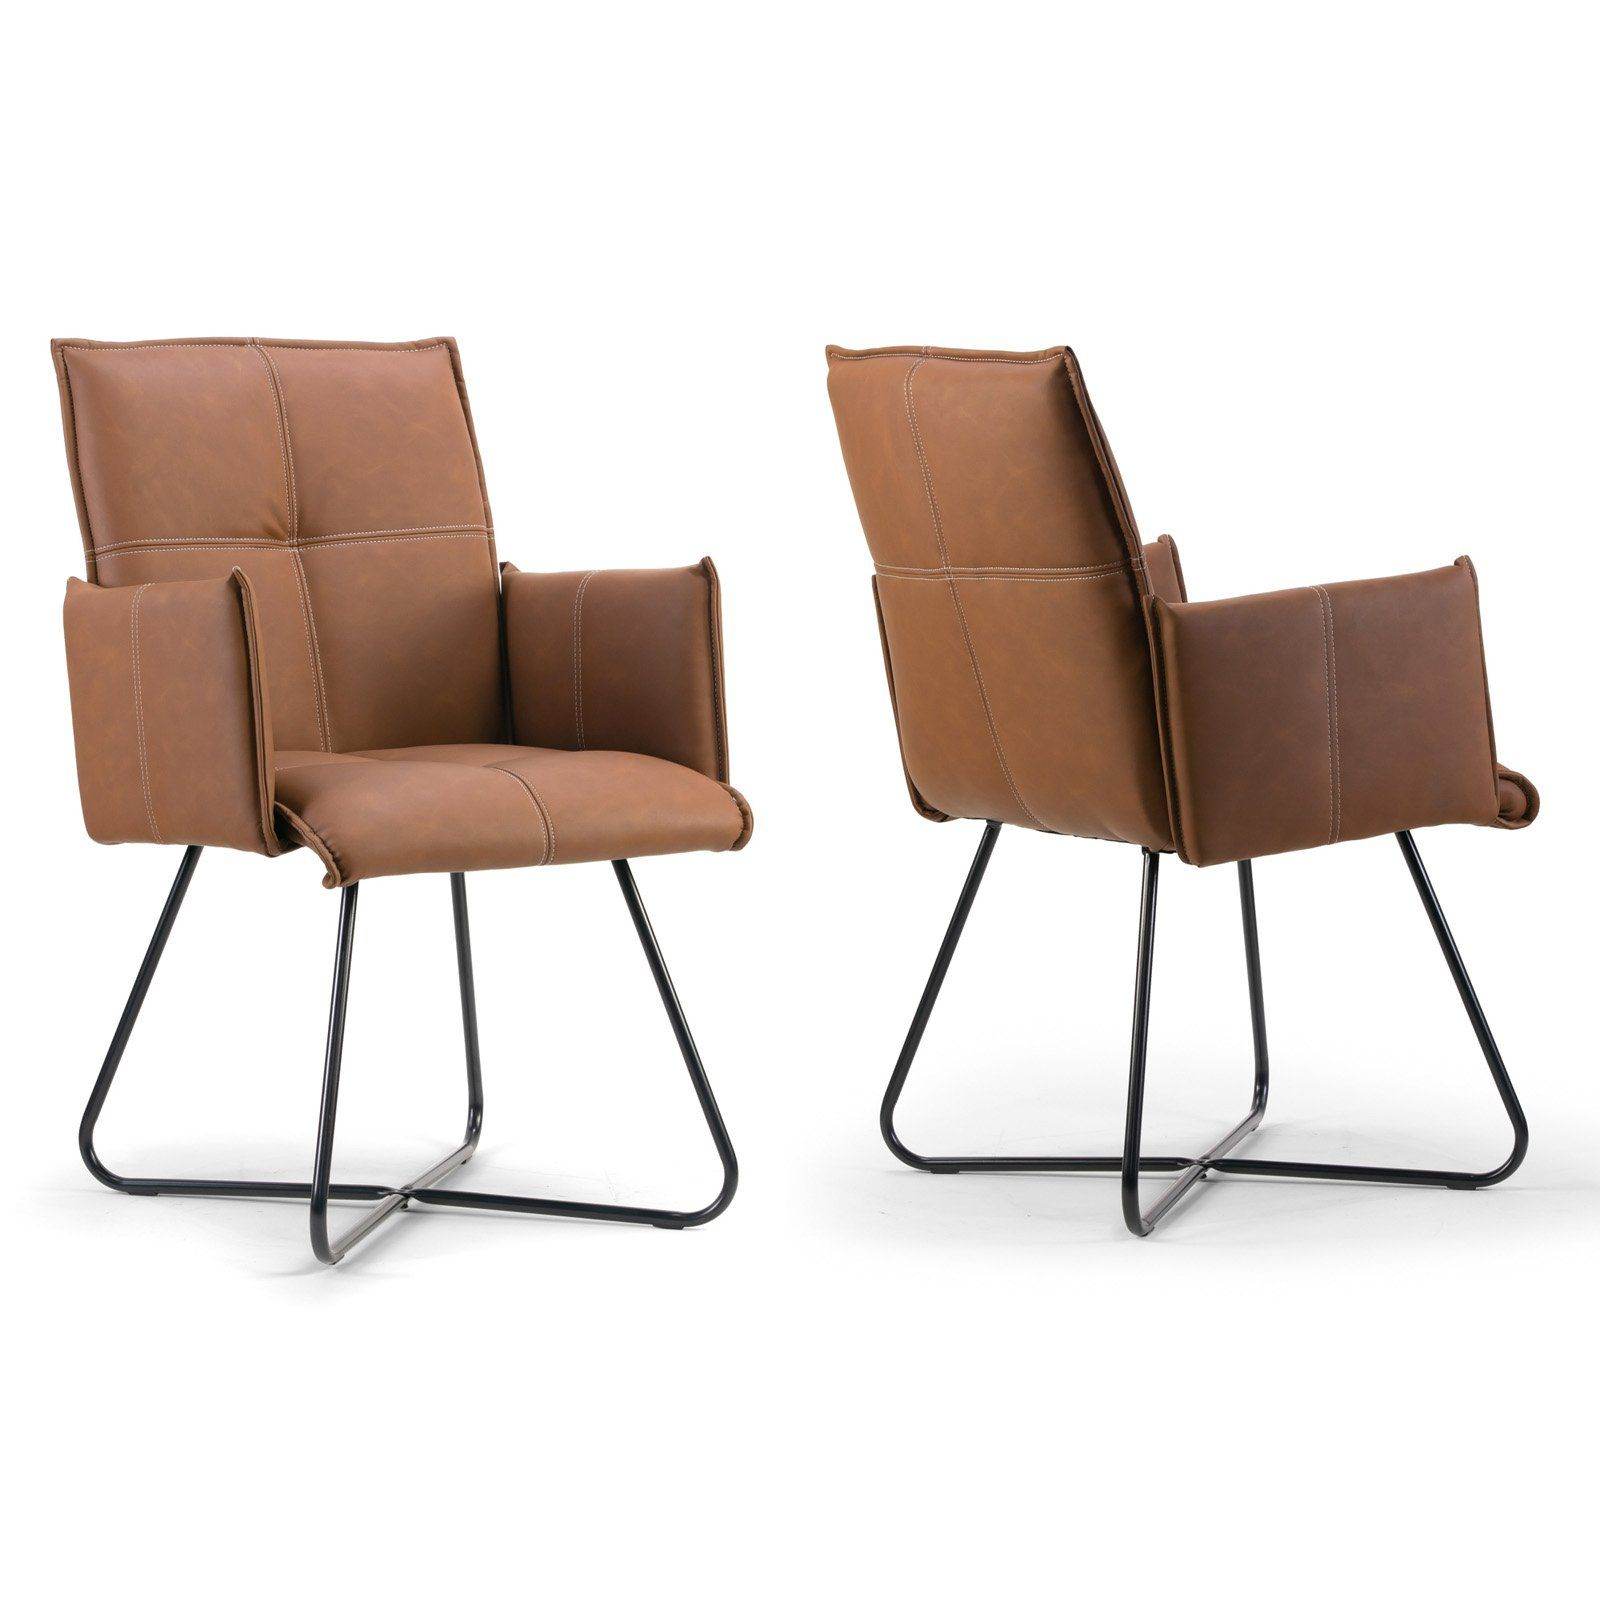 Enjoyable Glamour Home Ambel Modern Dining Arm Chair Set Of 2 Uwap Interior Chair Design Uwaporg